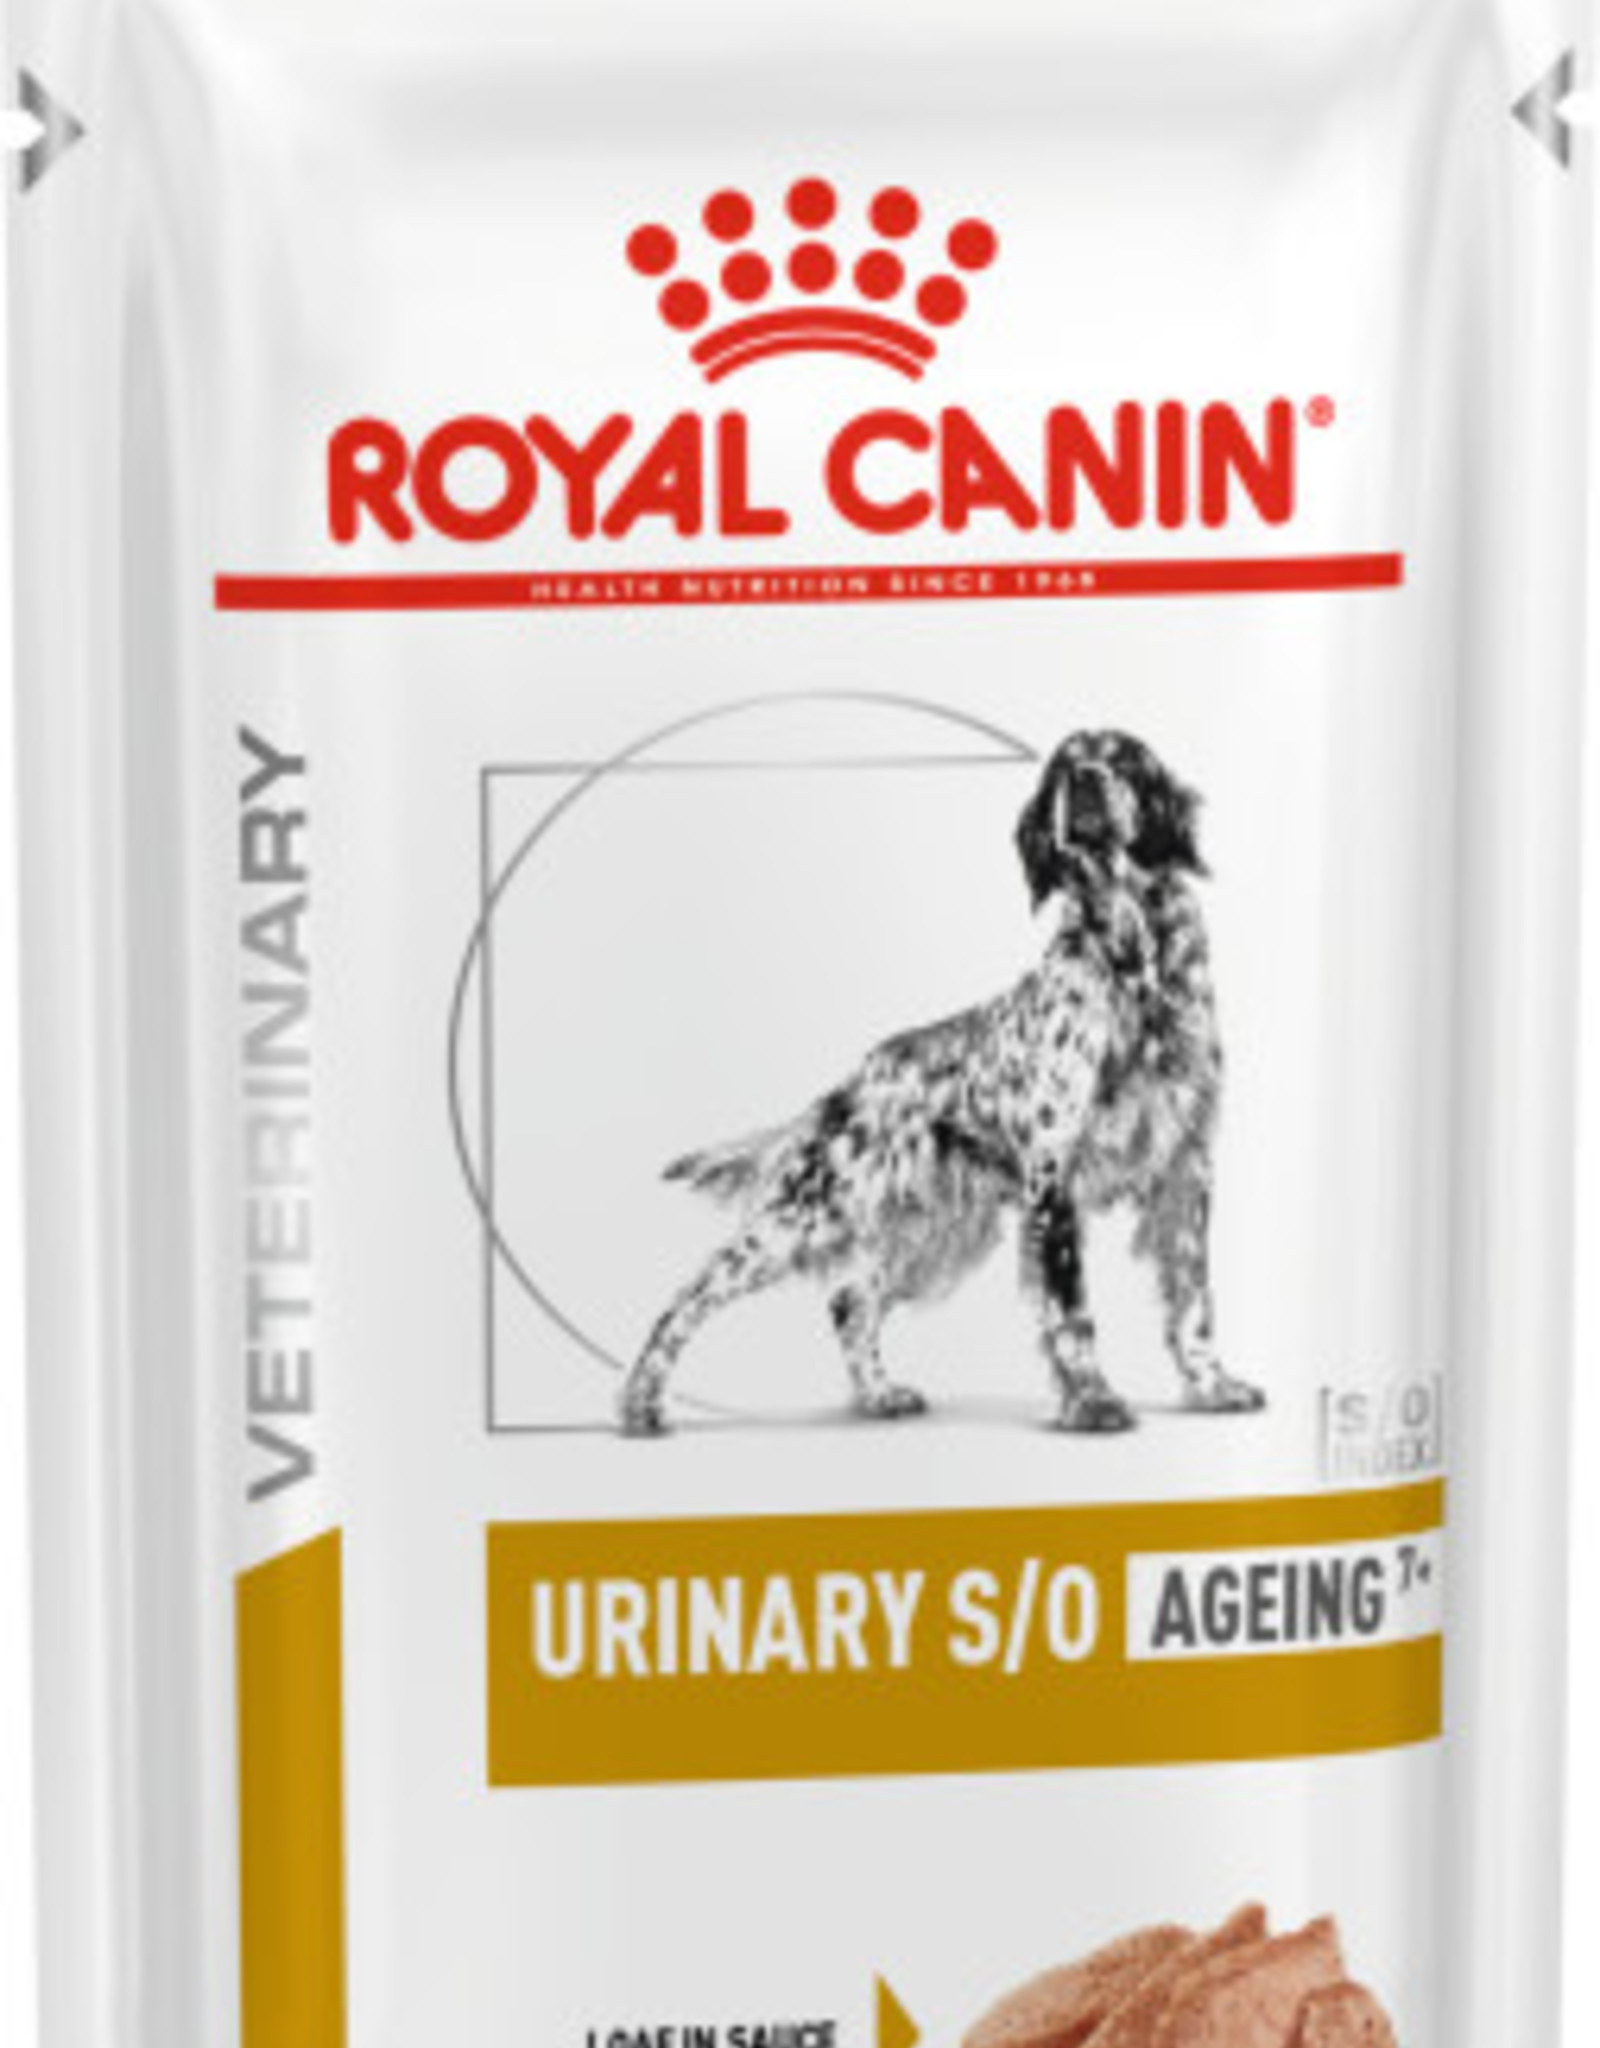 Royal Canin Royal Canin Wet Urinary S/o Ageing Hund 12x85g